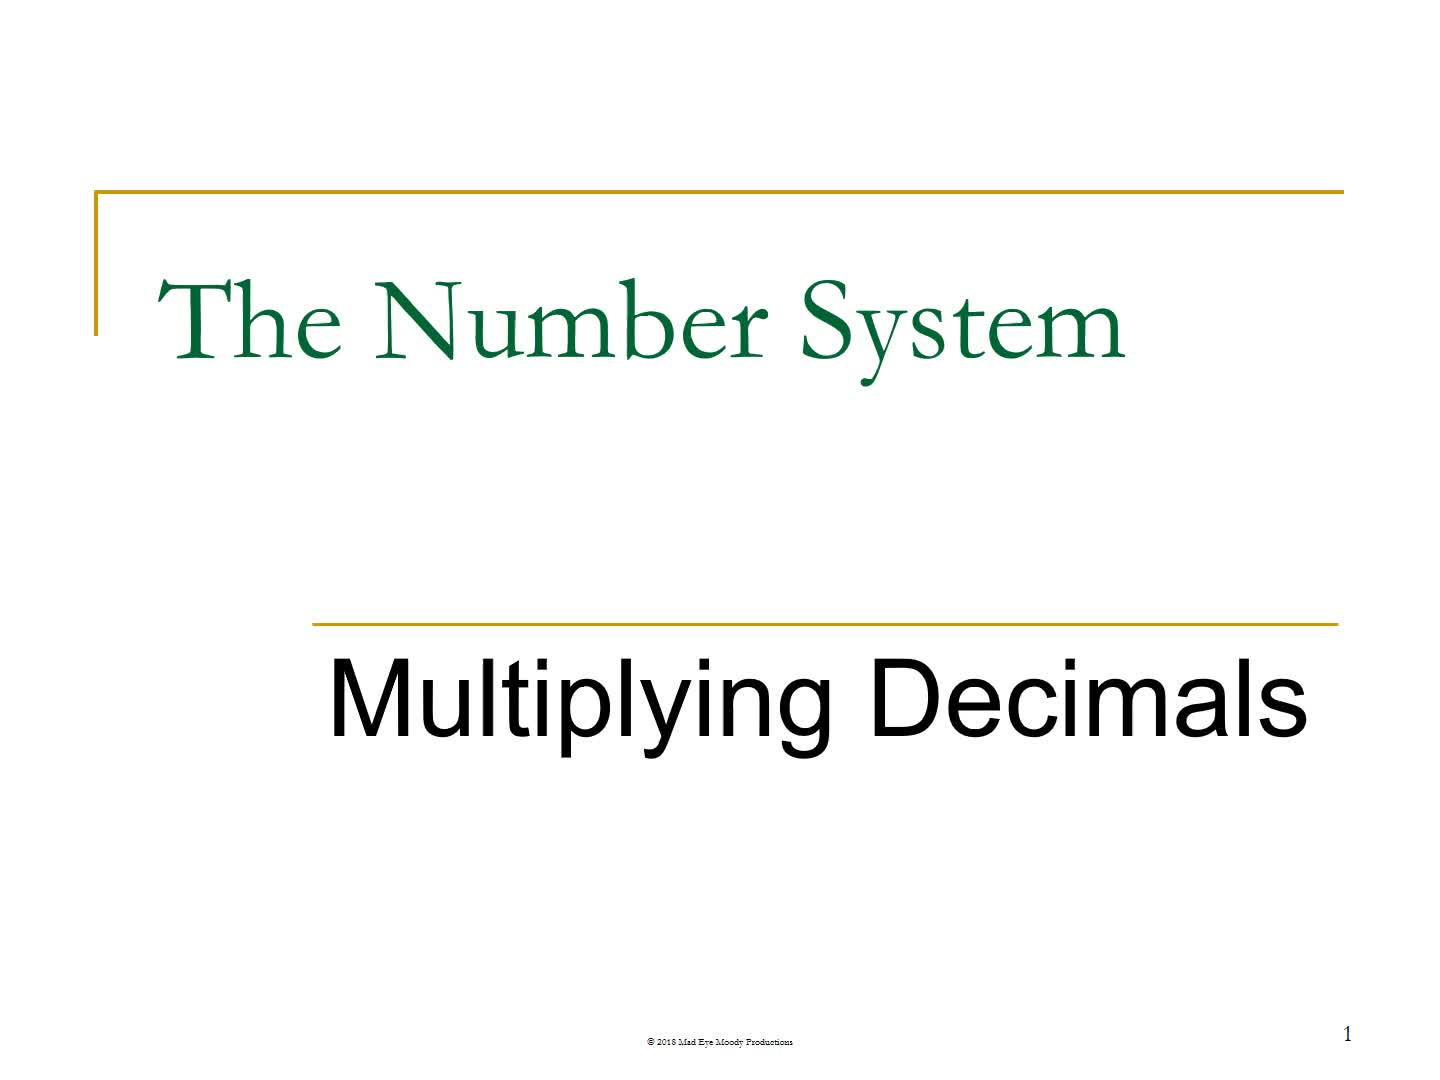 Multiplying Decimals 1819